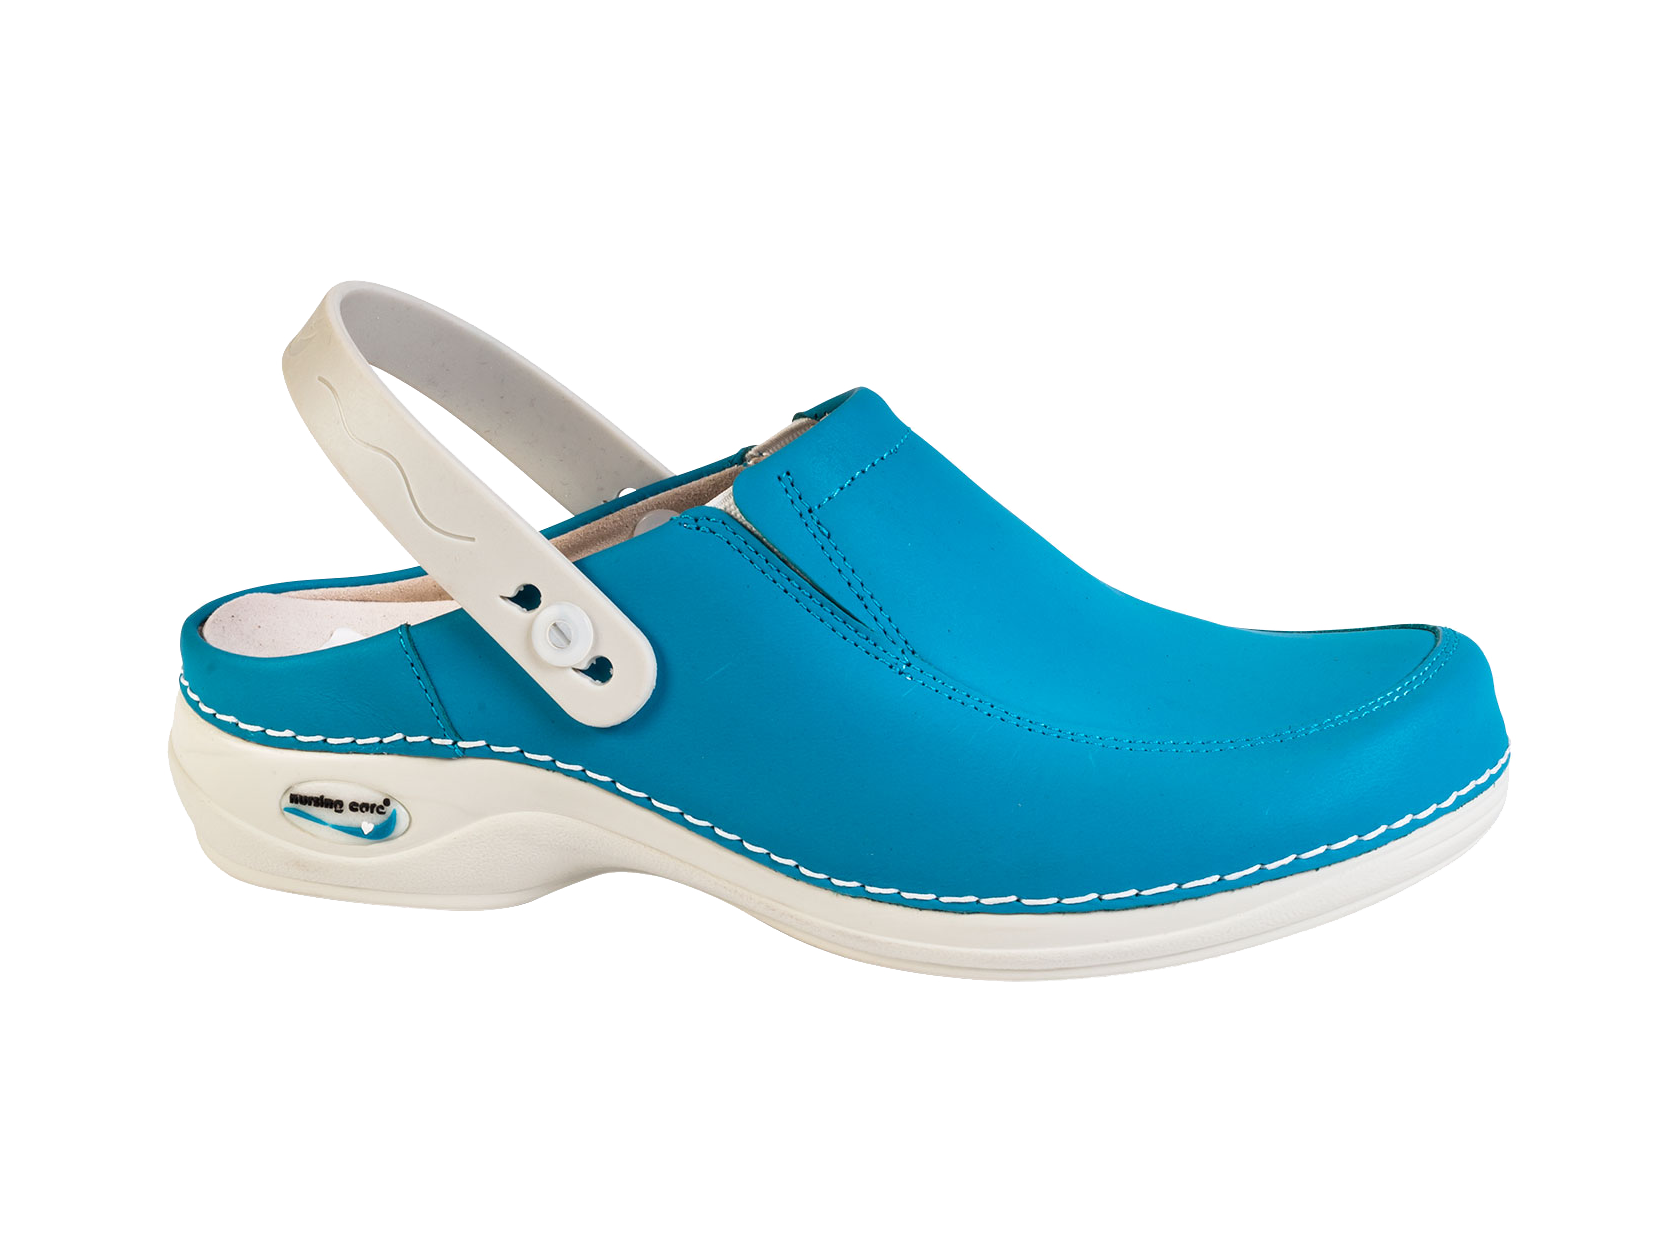 NURSING CARE dam light blue